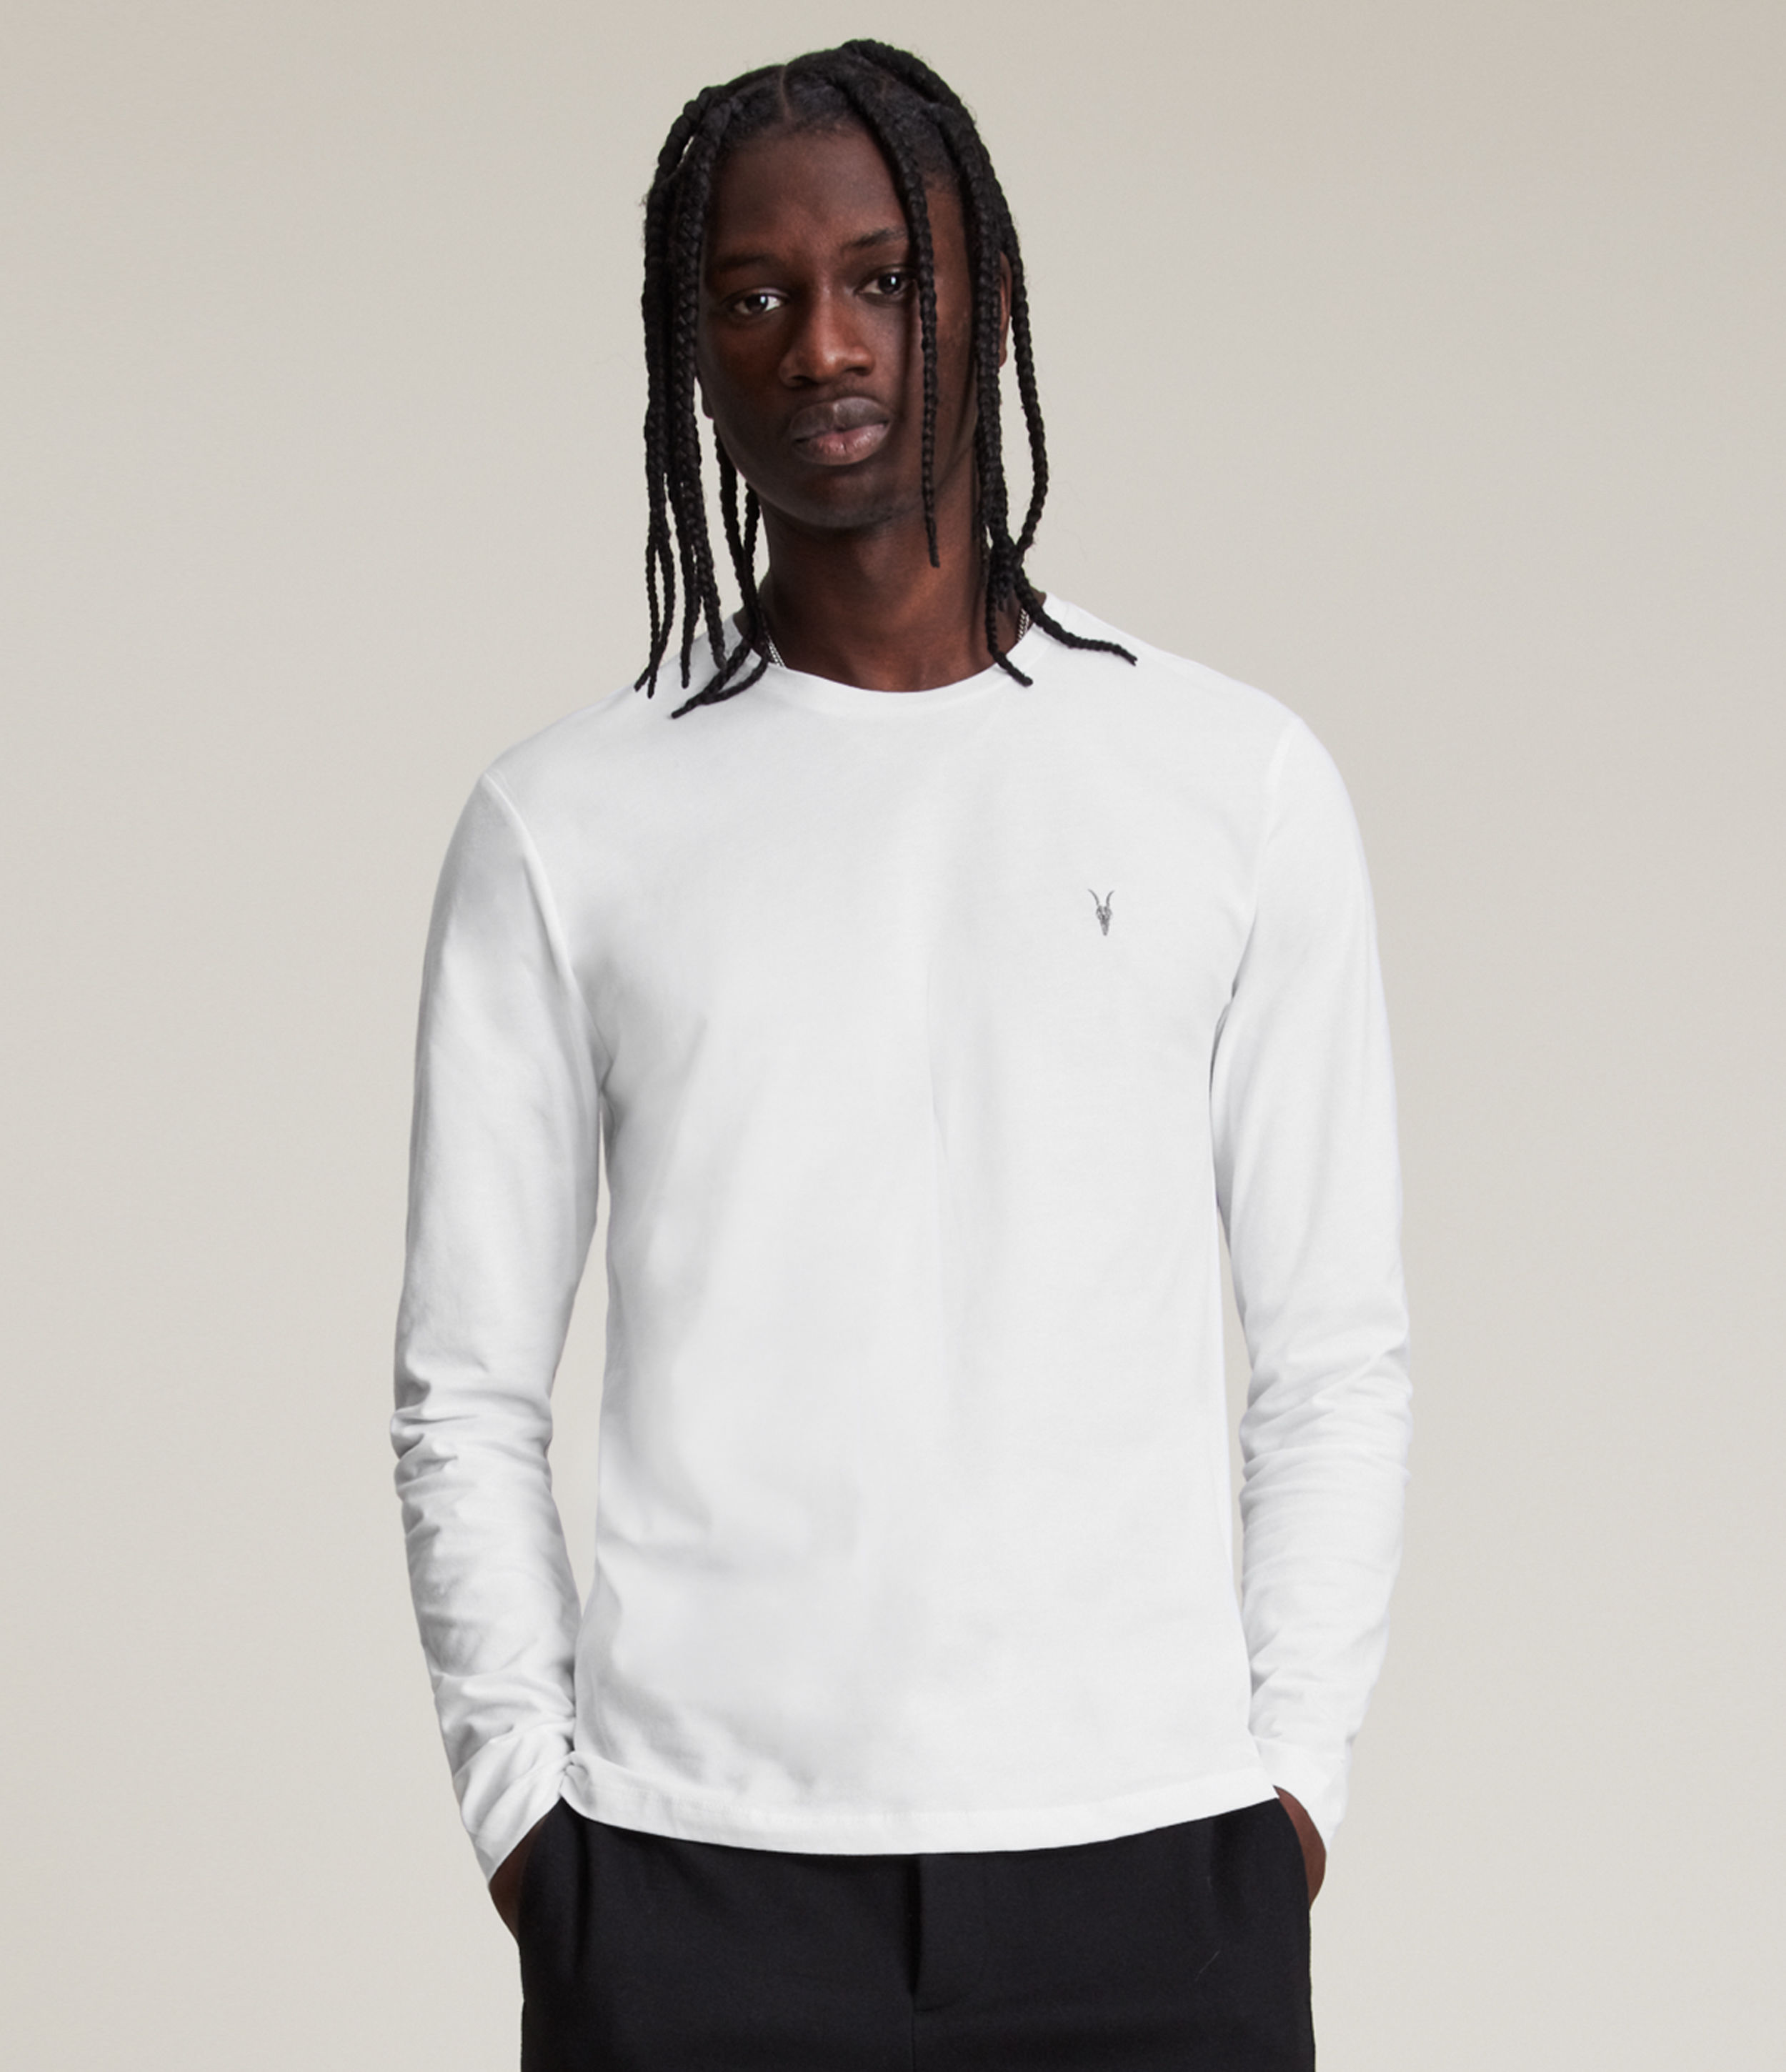 AllSaints Men's Cotton Regular Fit Brace Tonic Long Sleeve Crew T-Shirt, White, Size: S